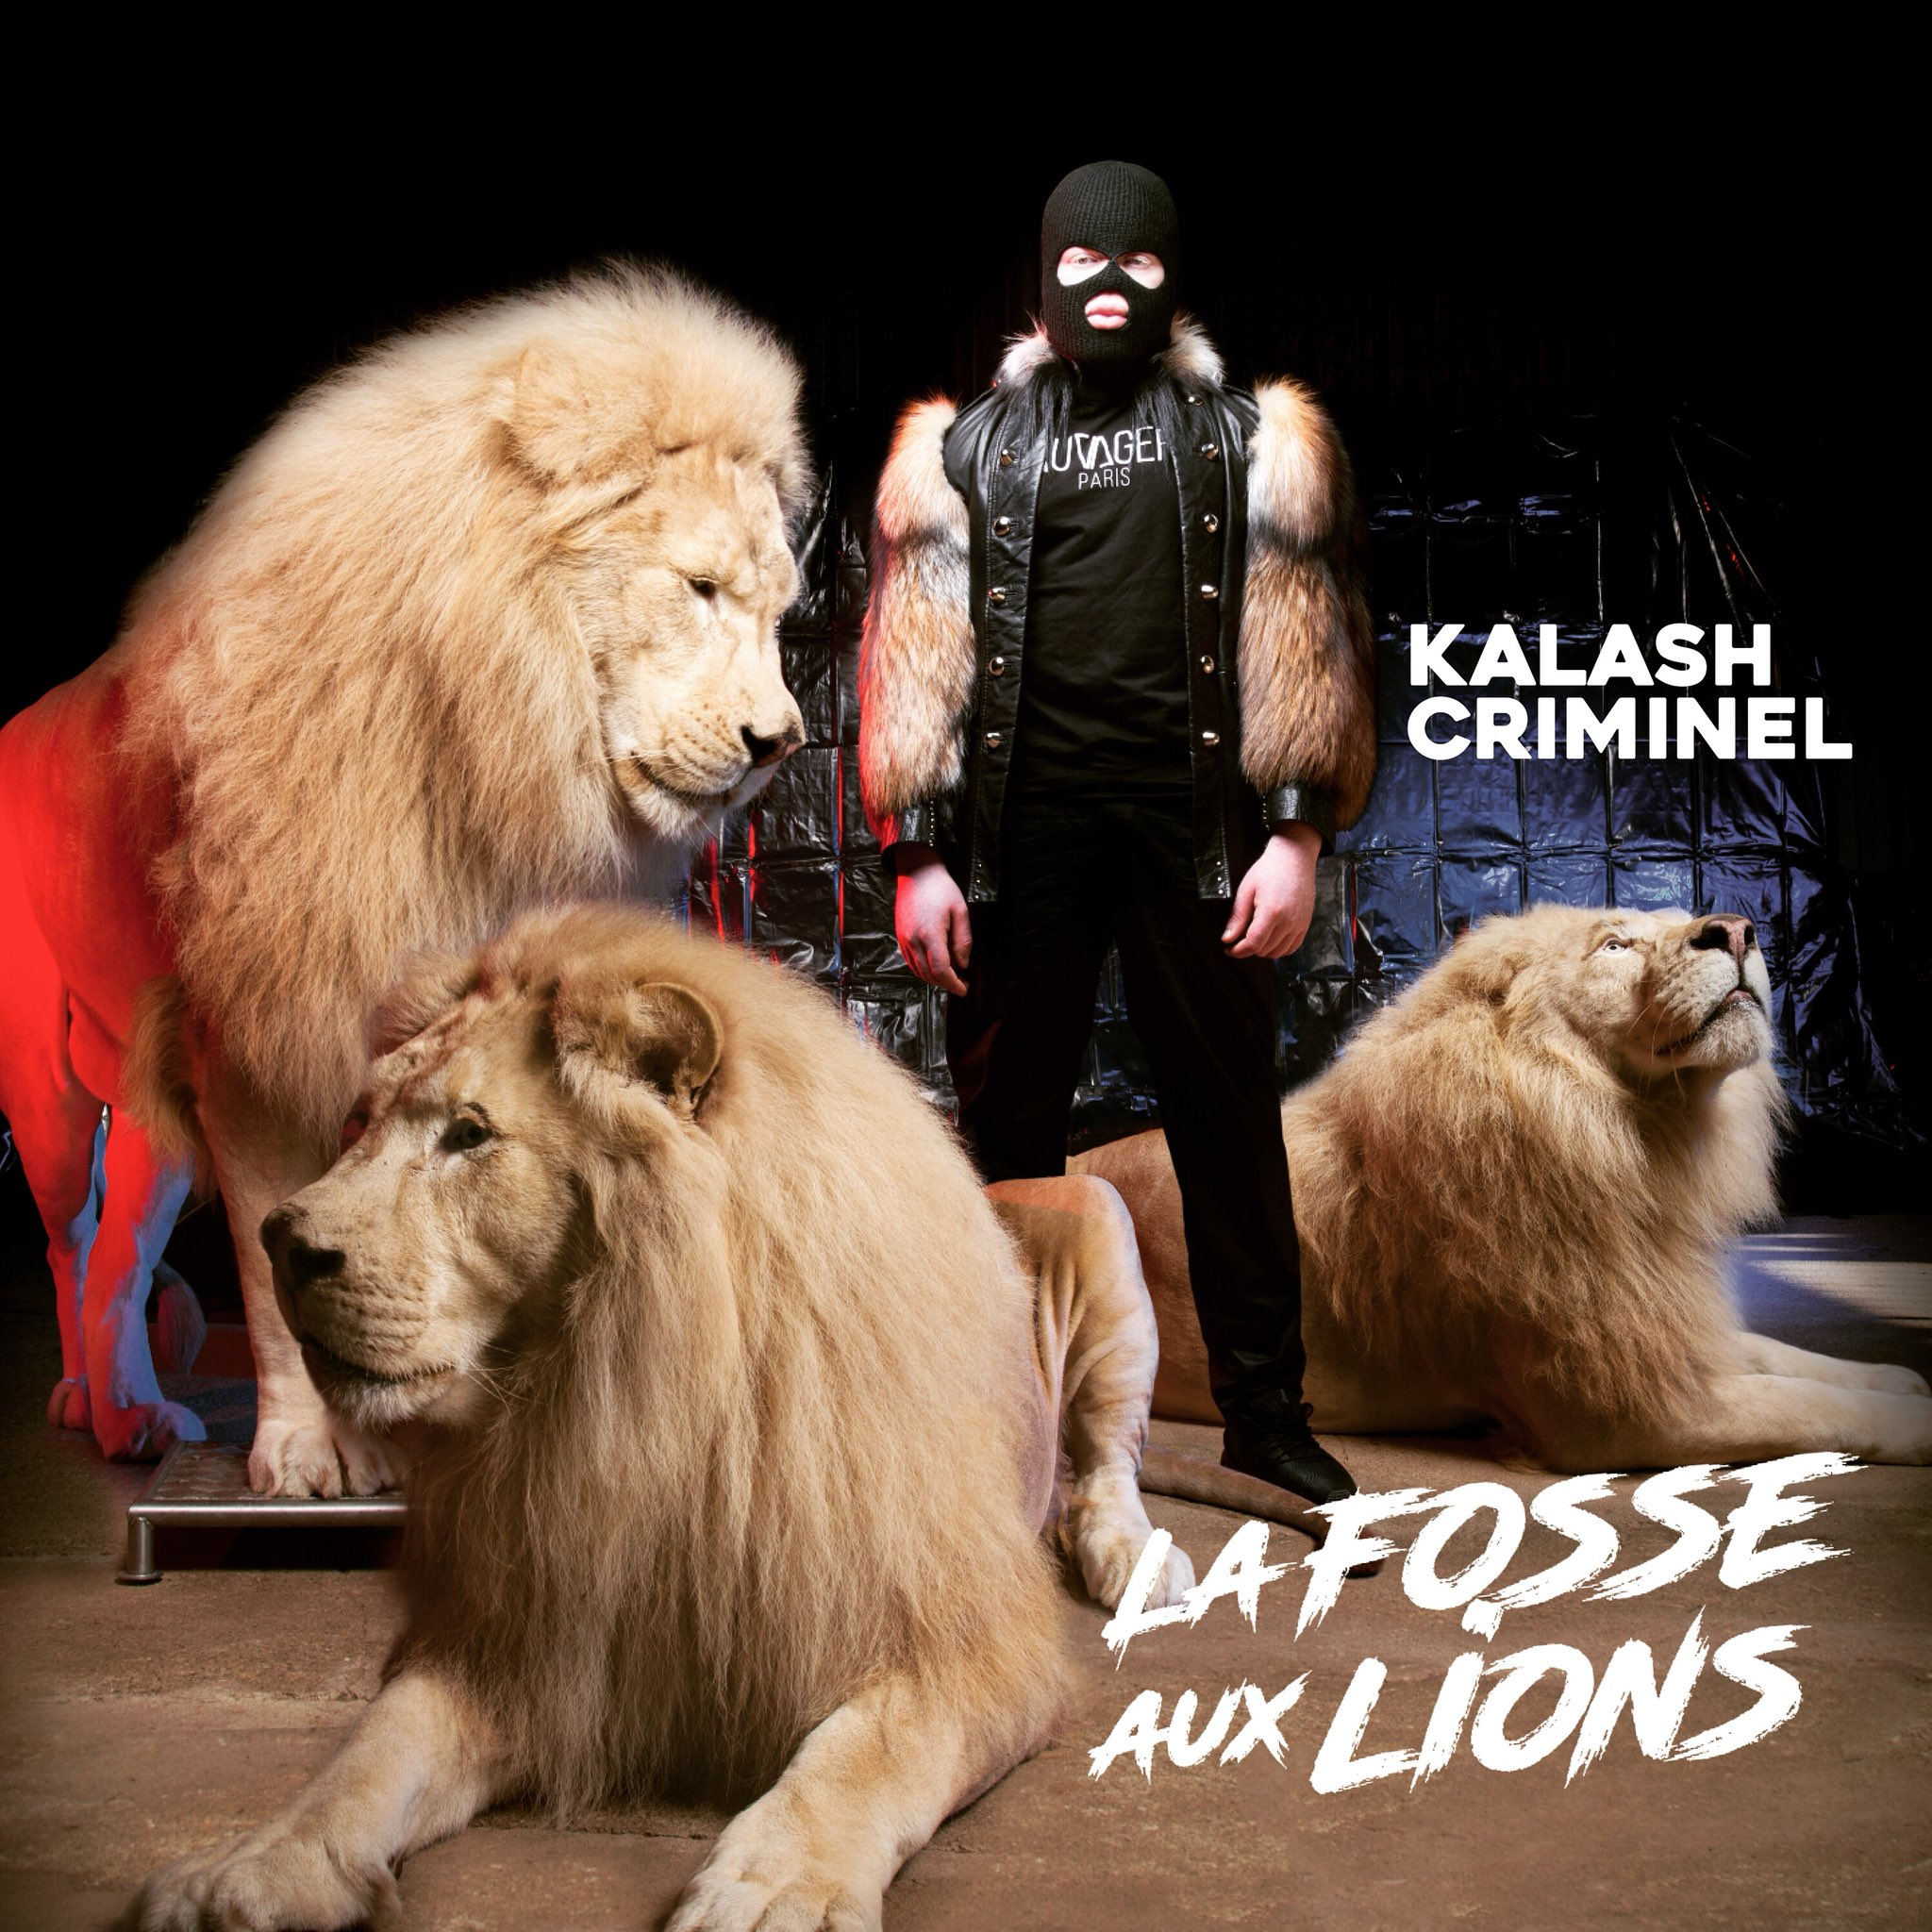 [ALBUM] Kalash Criminel – La fosse aux lions